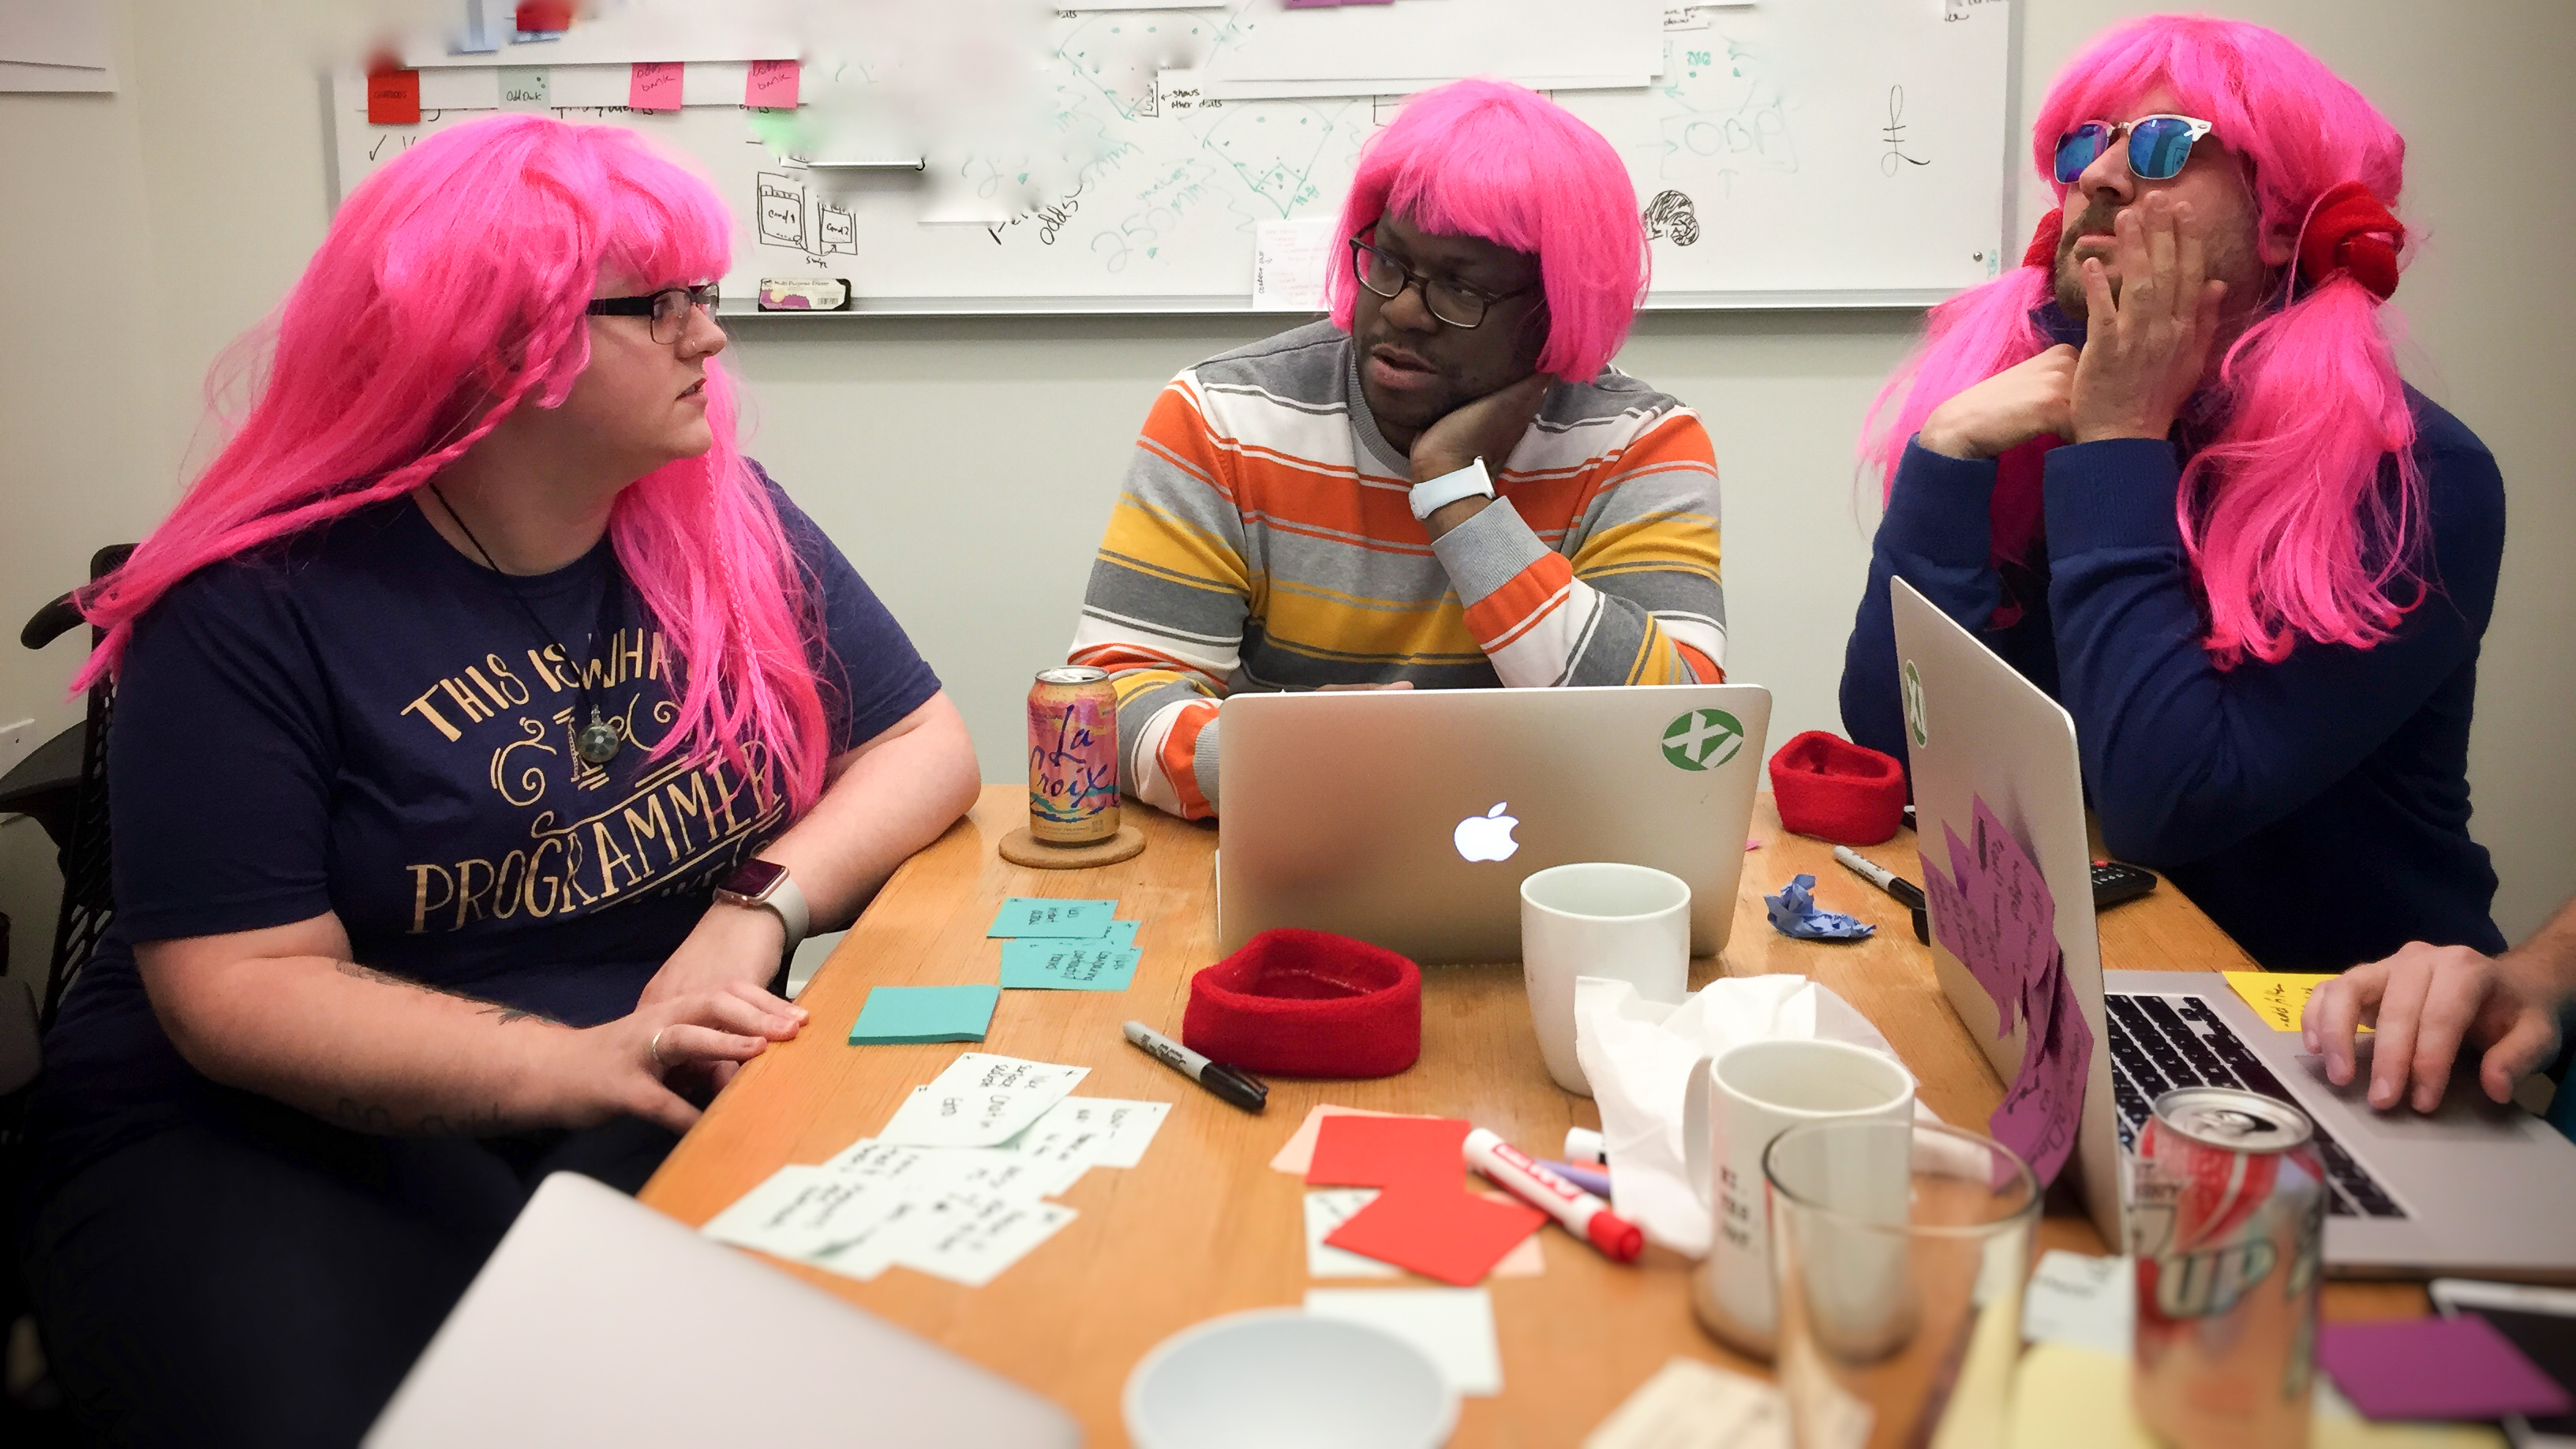 UX team wearing wigs